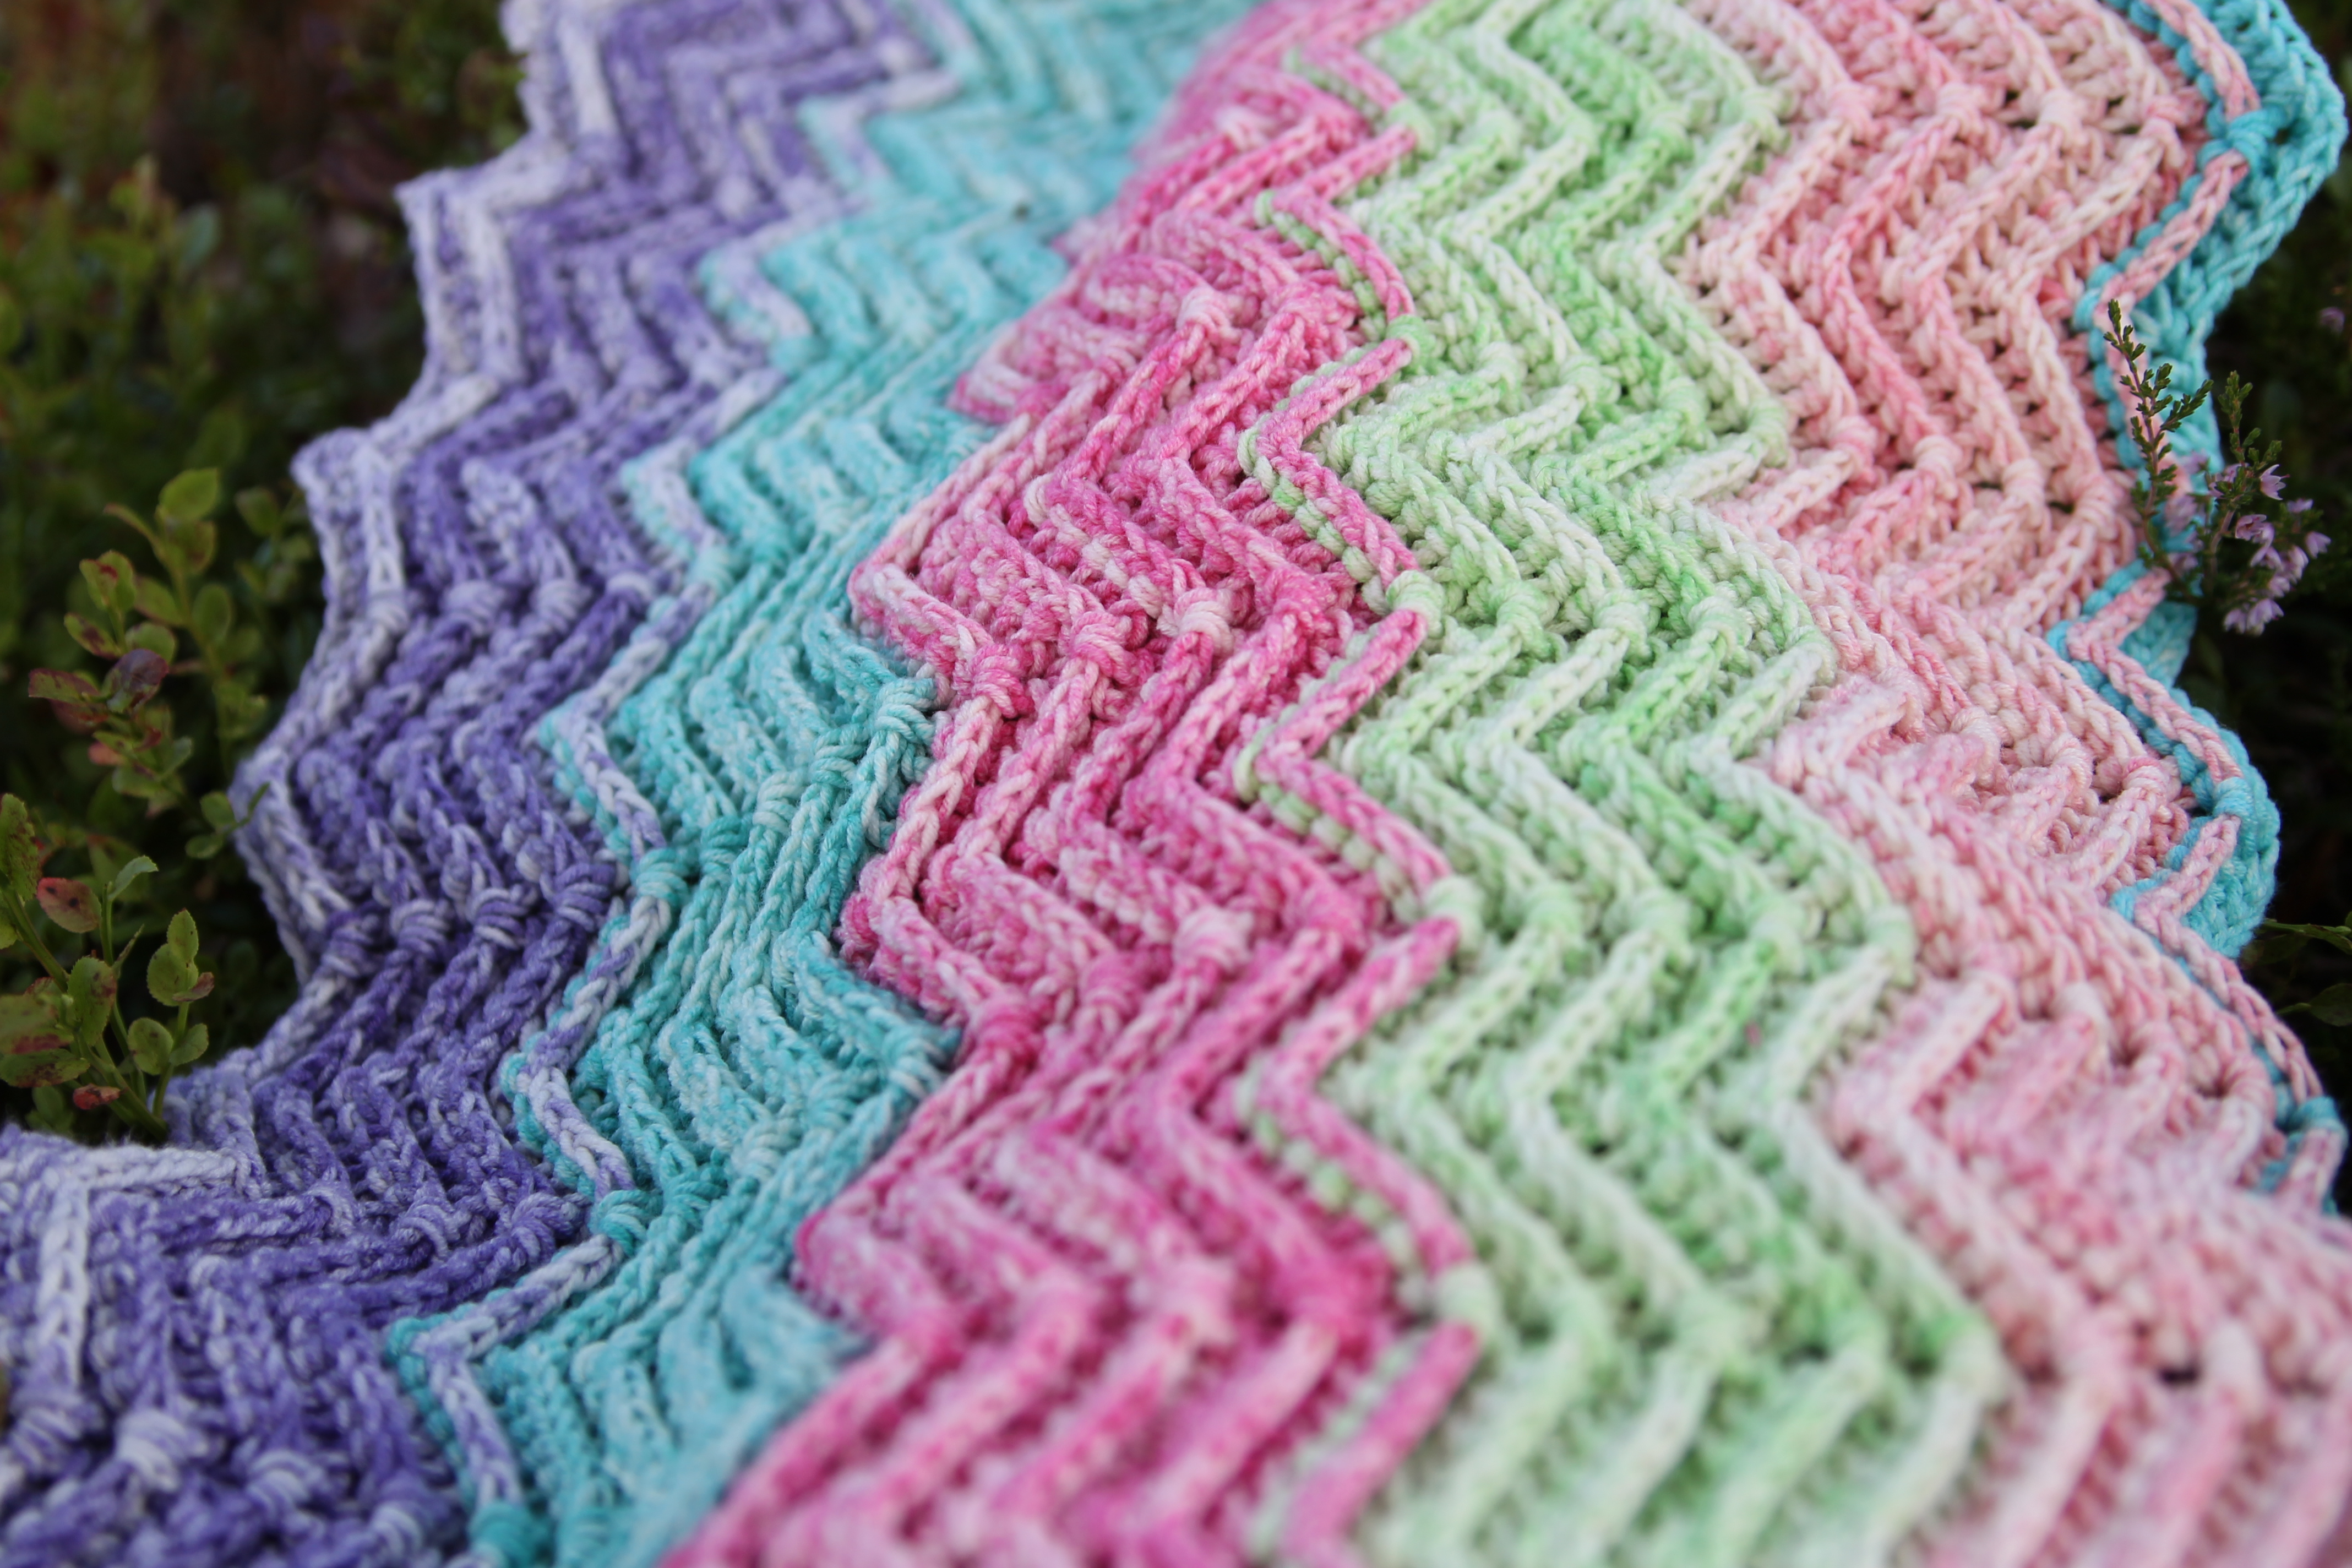 3D Chevron Blanket WIP by MissNeriss, using Scheepjes Aquarel: http://shrsl.com/?dhnl